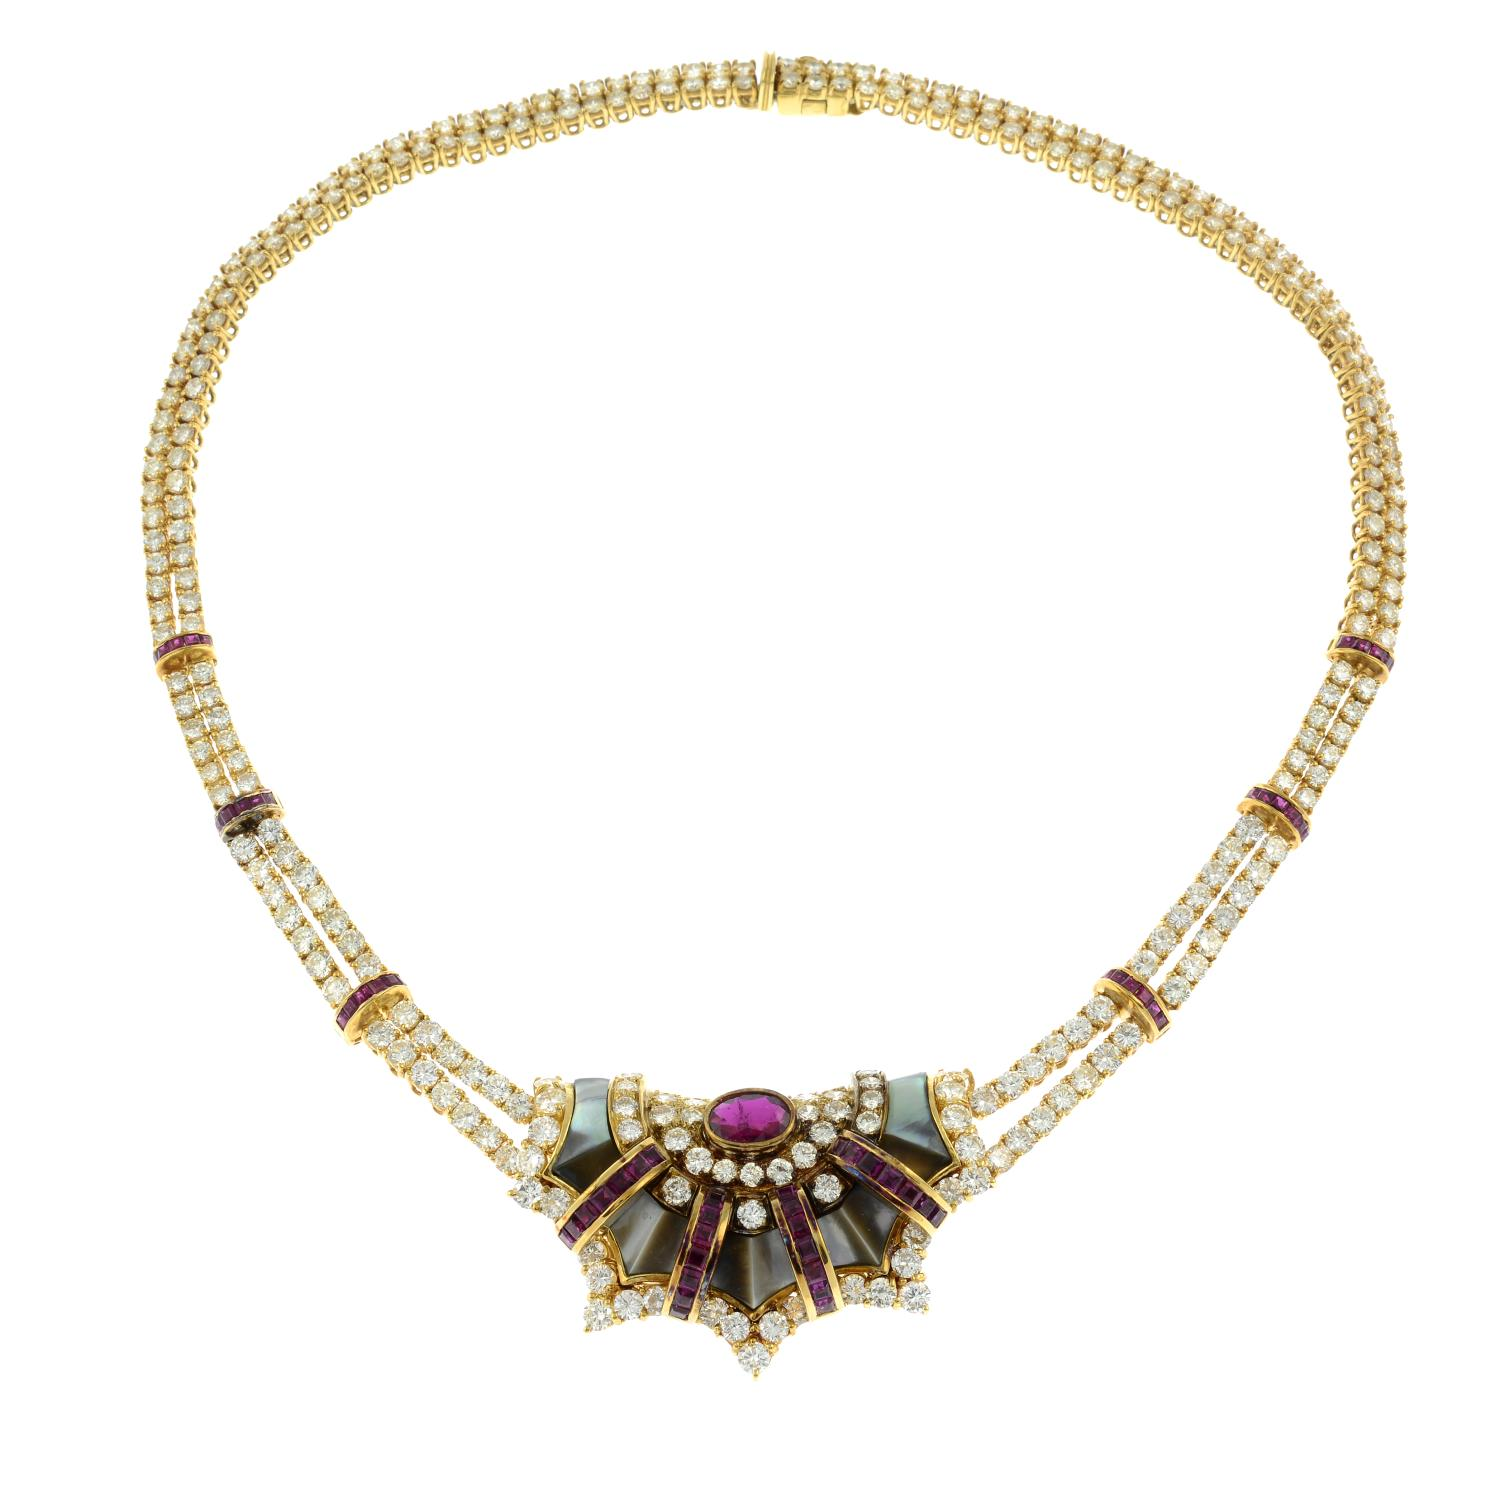 A diamond, ruby and grey mother-of pearl necklace, - Image 8 of 9